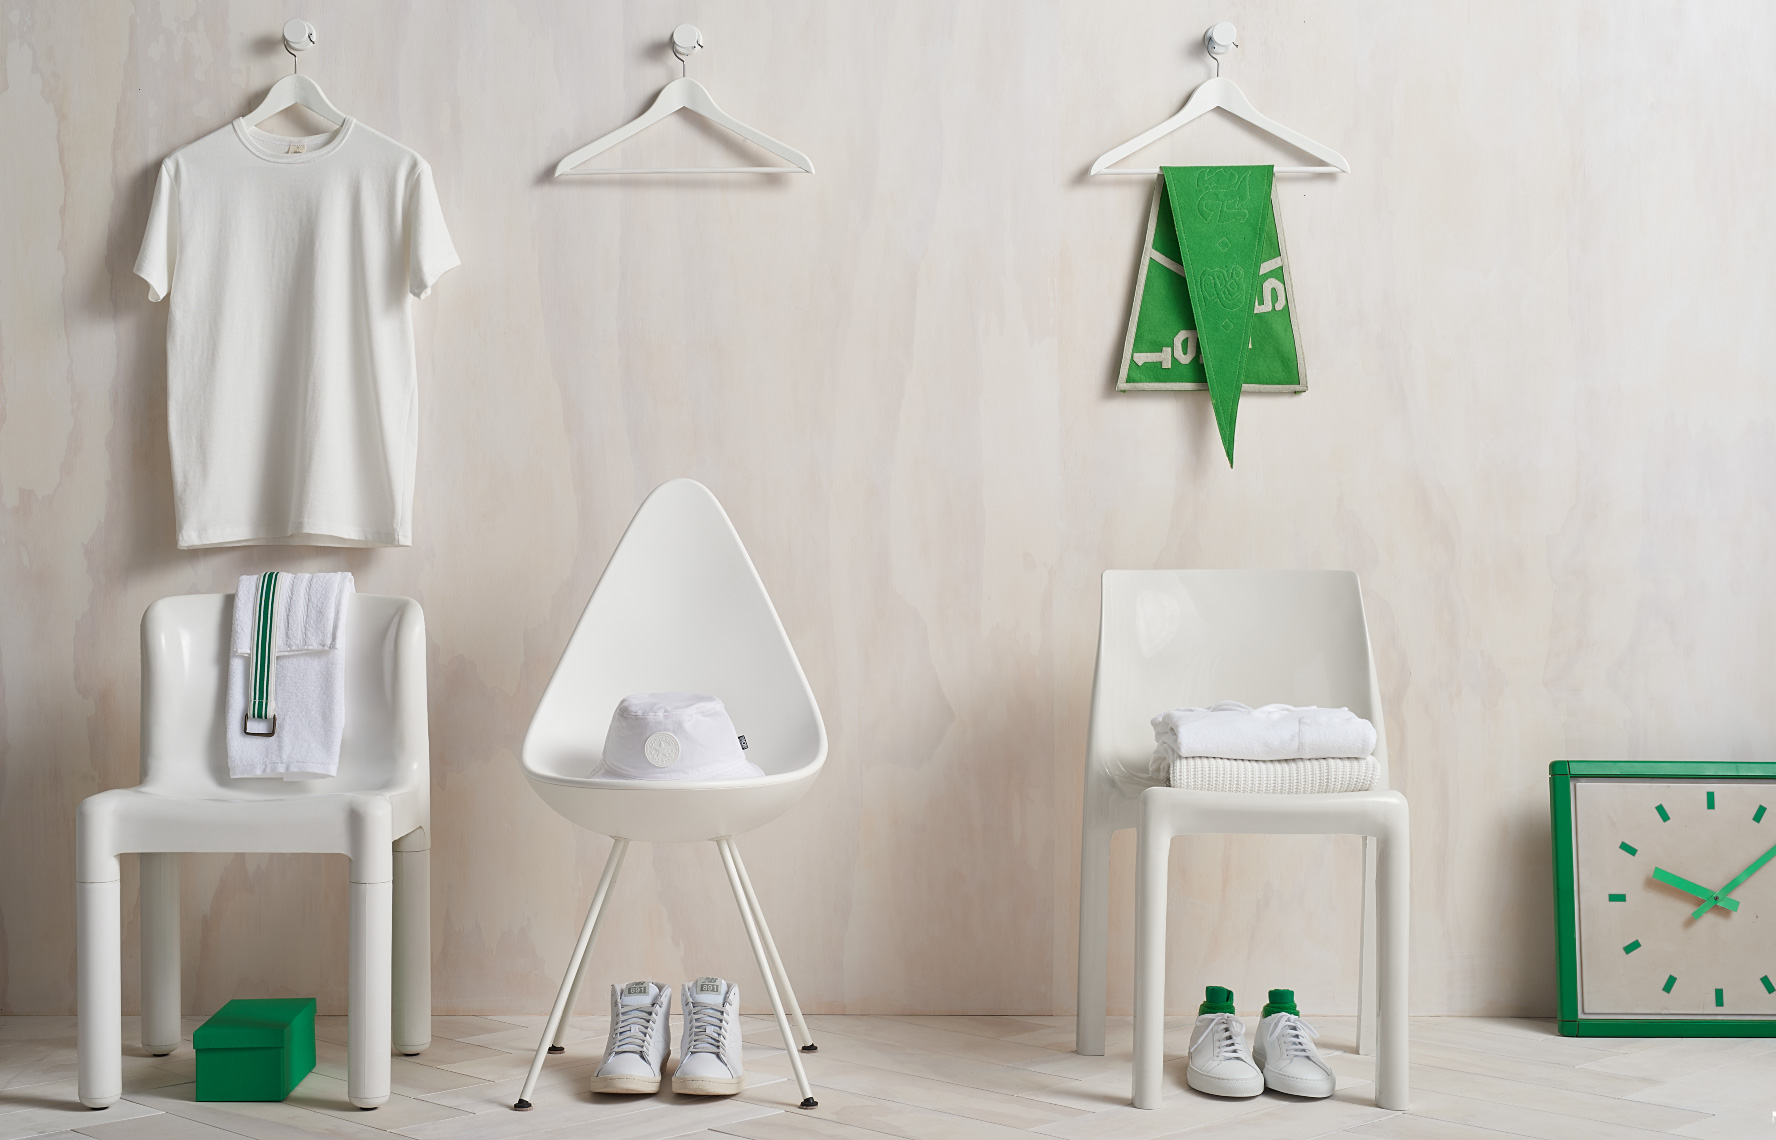 3 white plastic modern chairs with white props against white washed wood wall and white washed floor